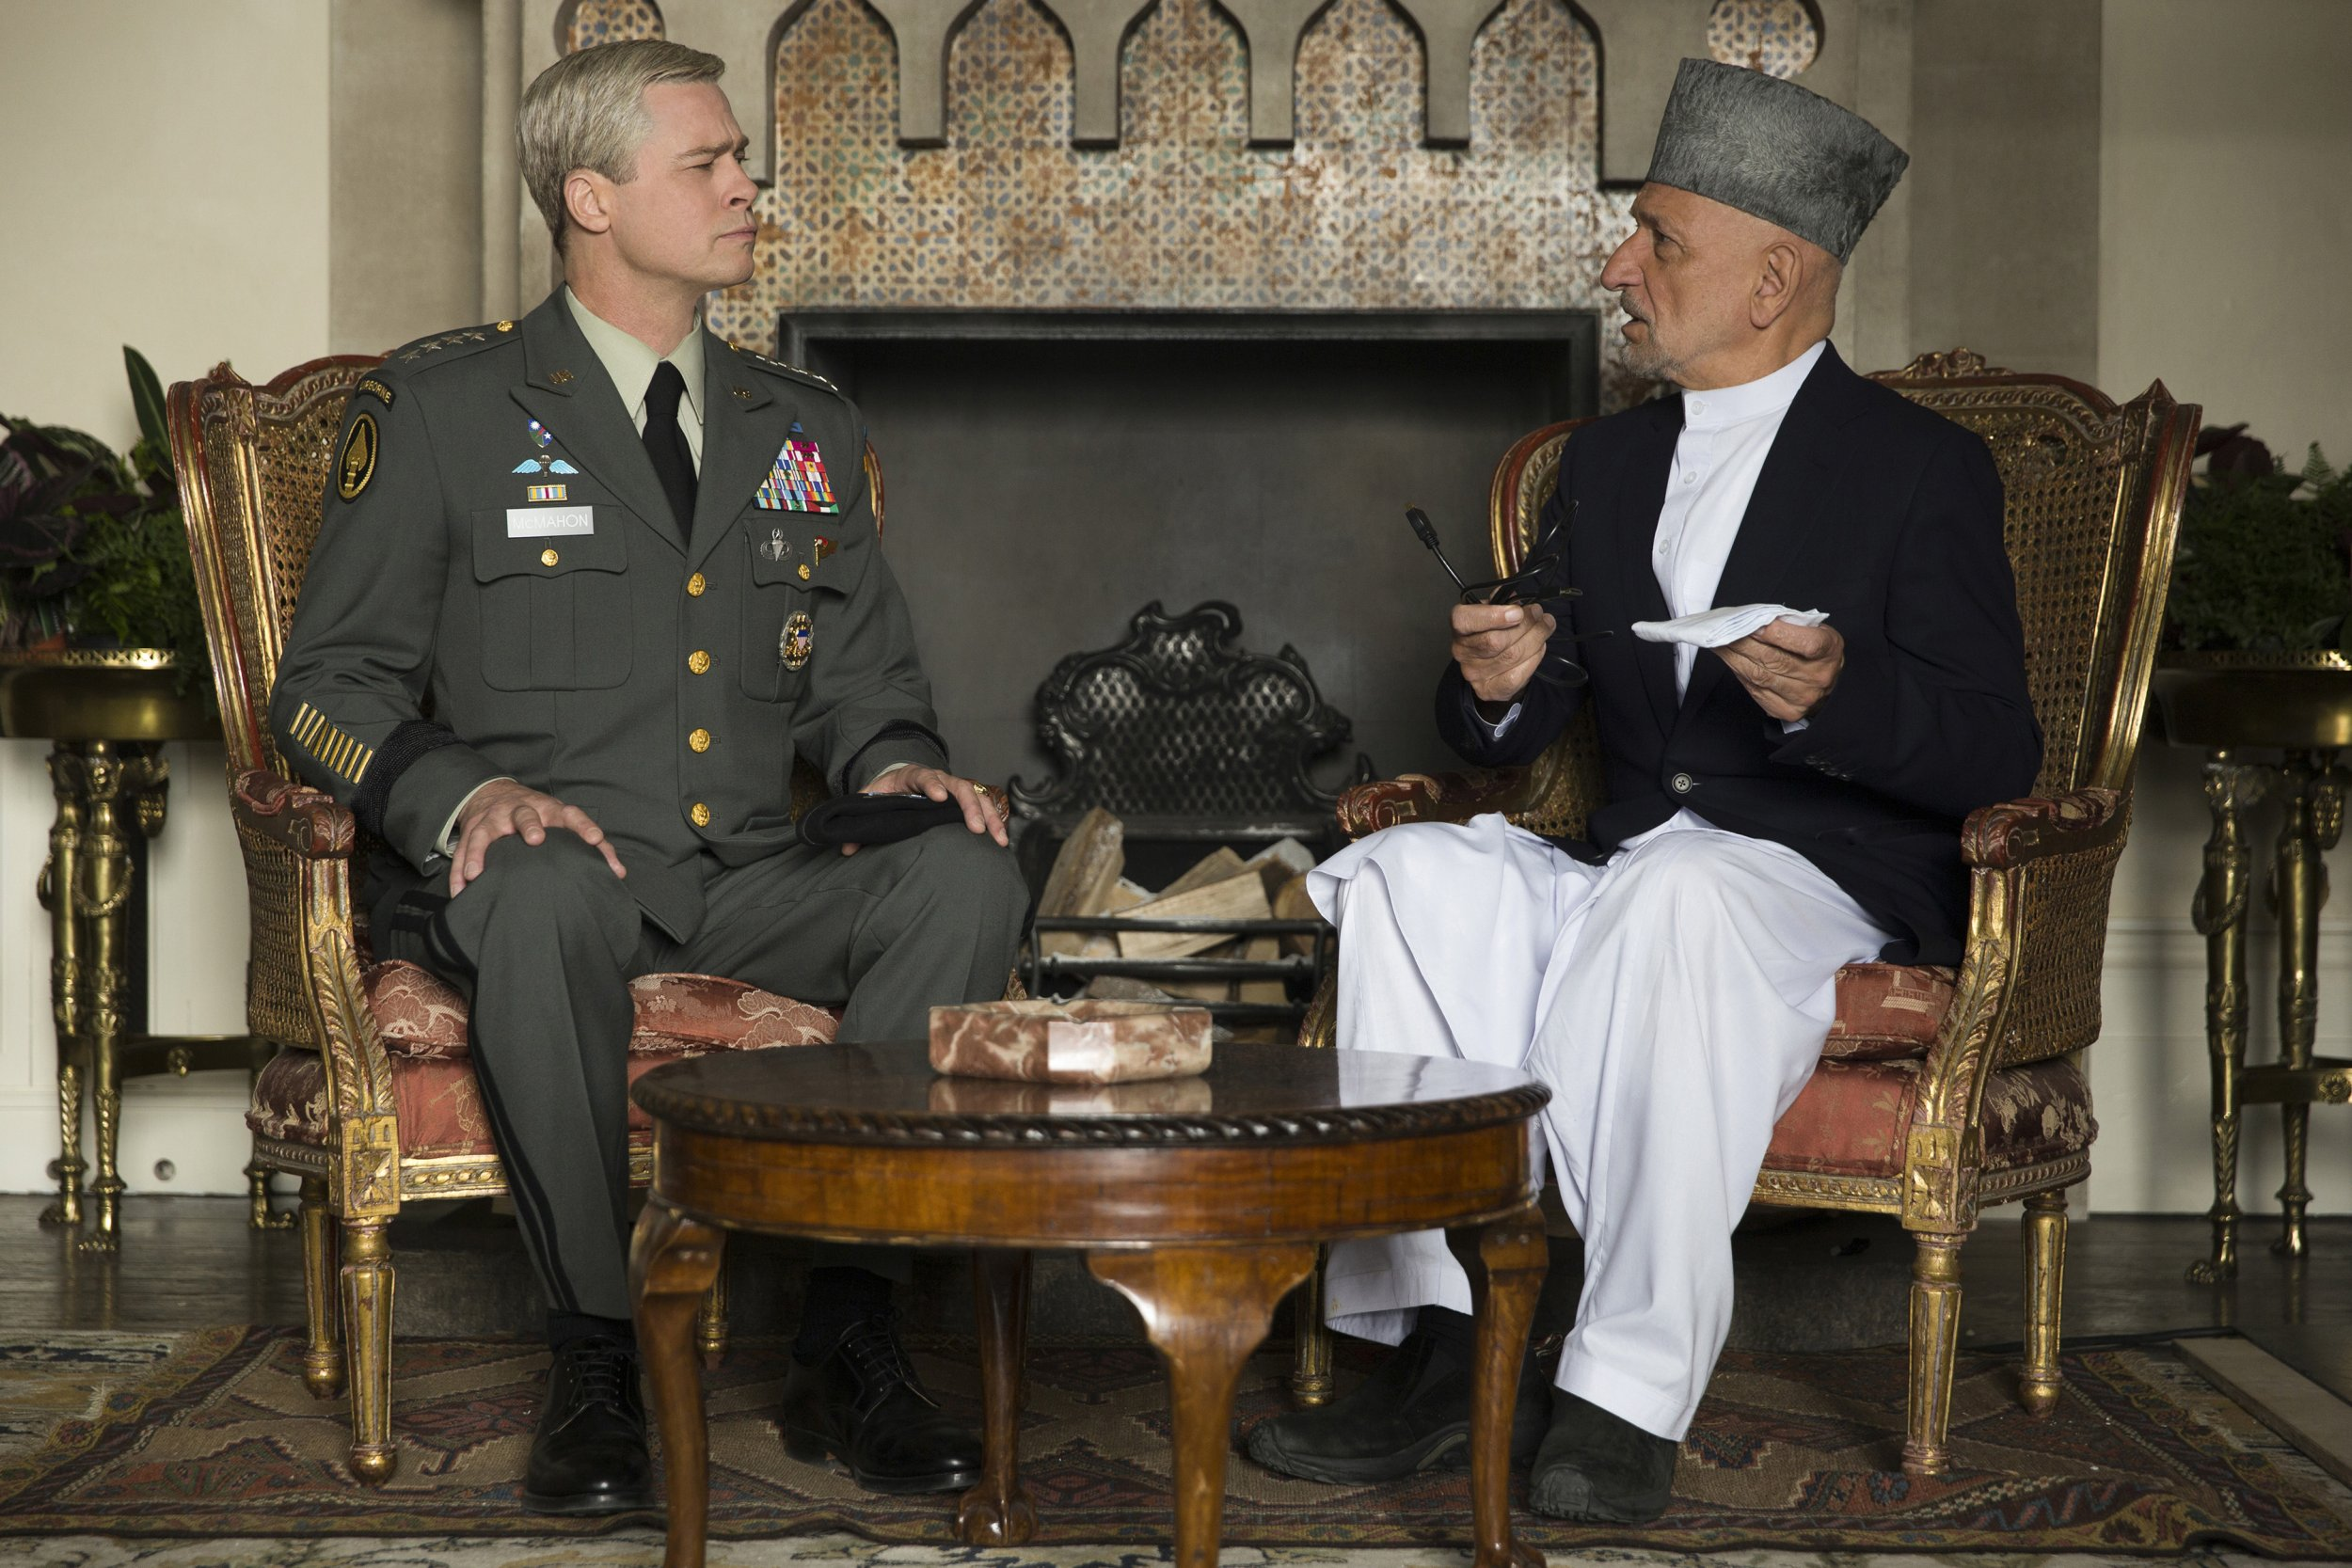 Ben Kingsley and Brad Pitt in War Machine